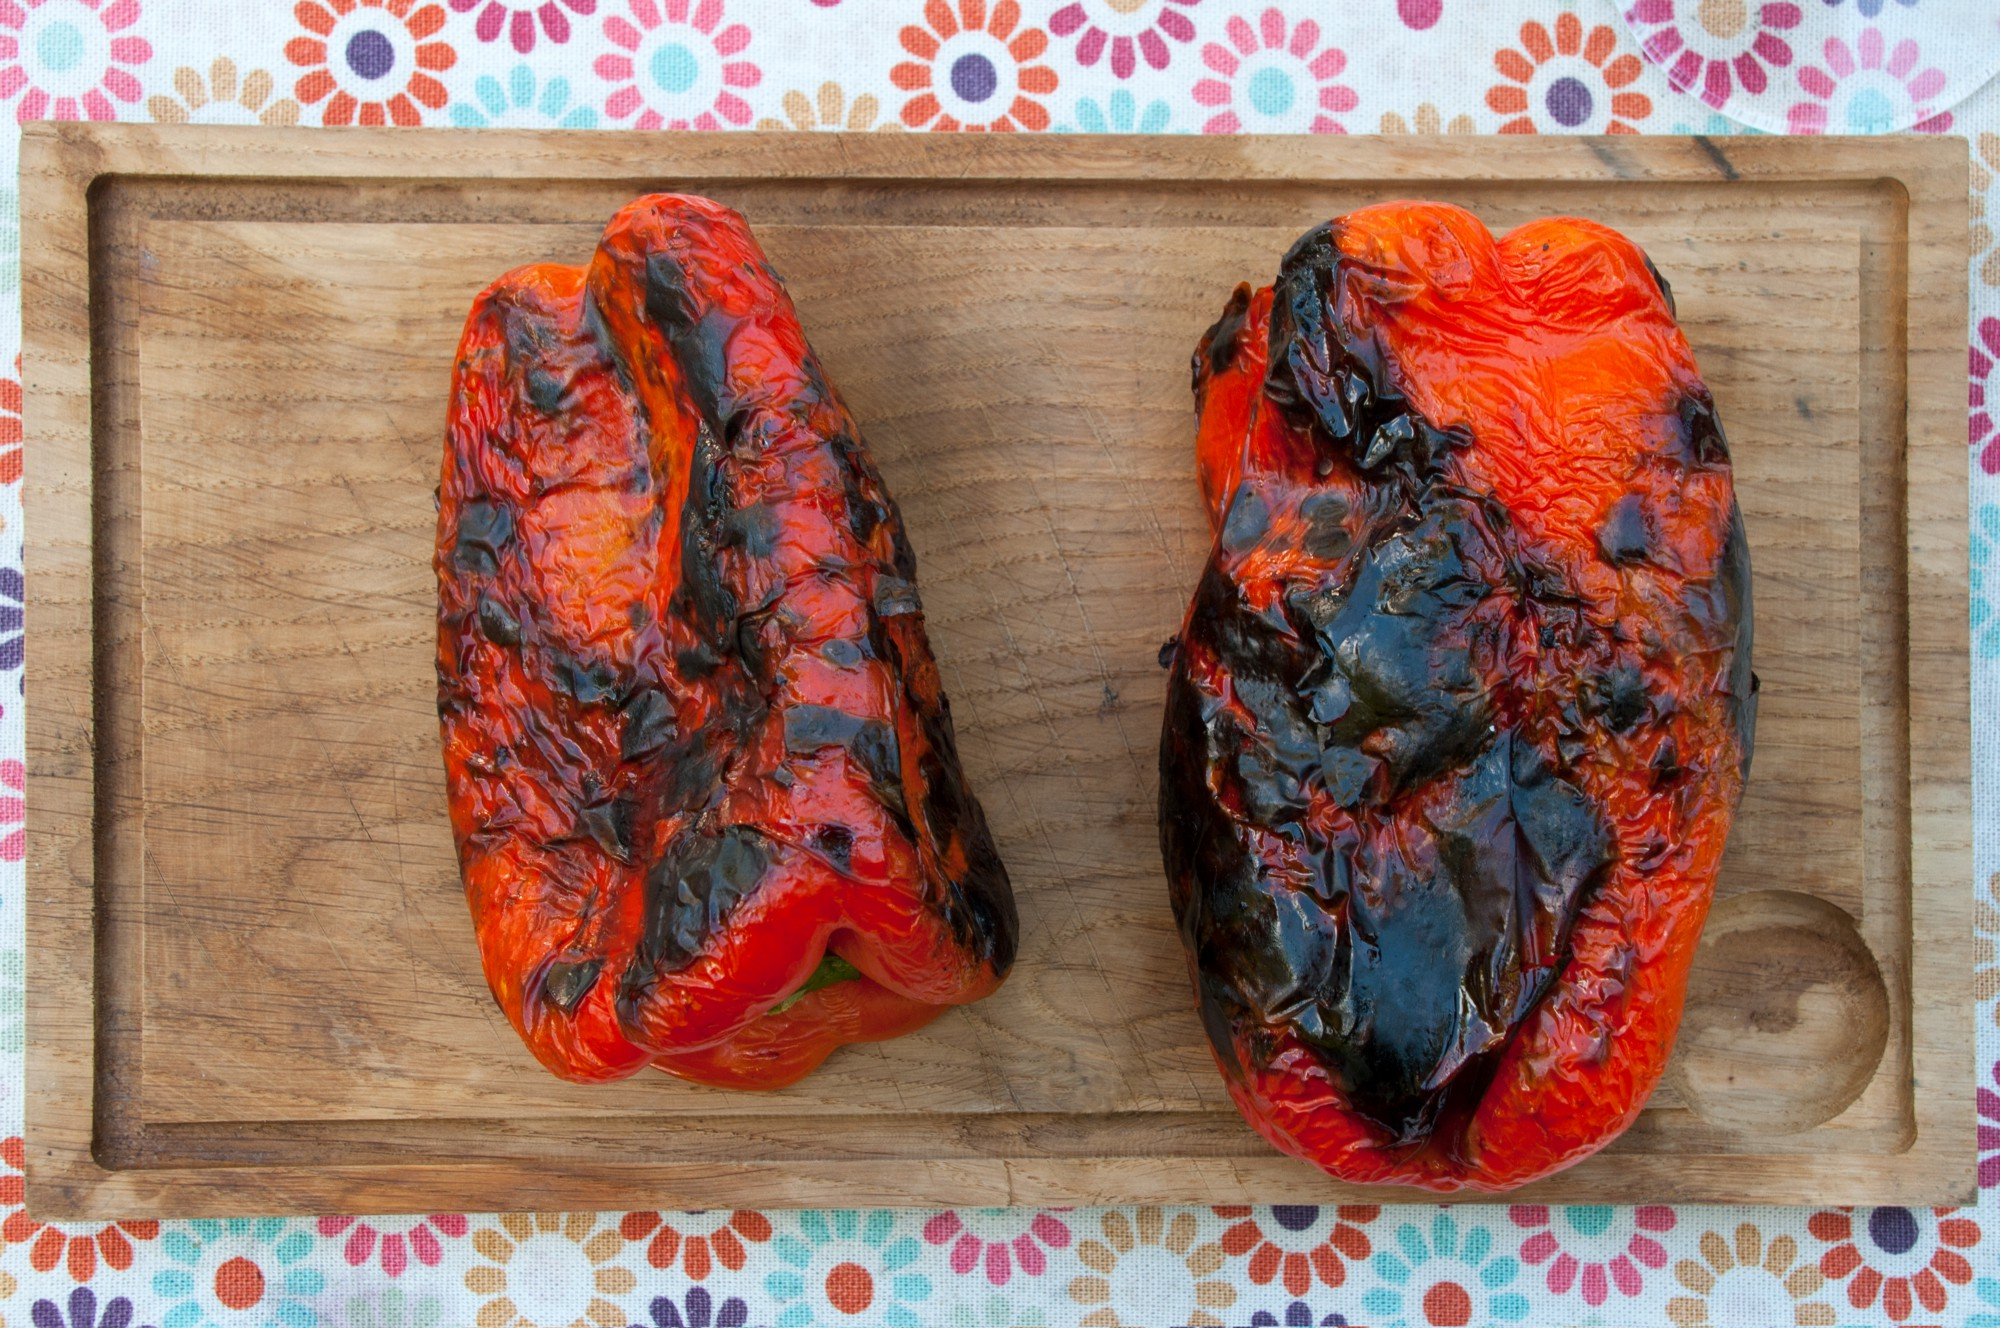 Charred red peppers on a wooden board.